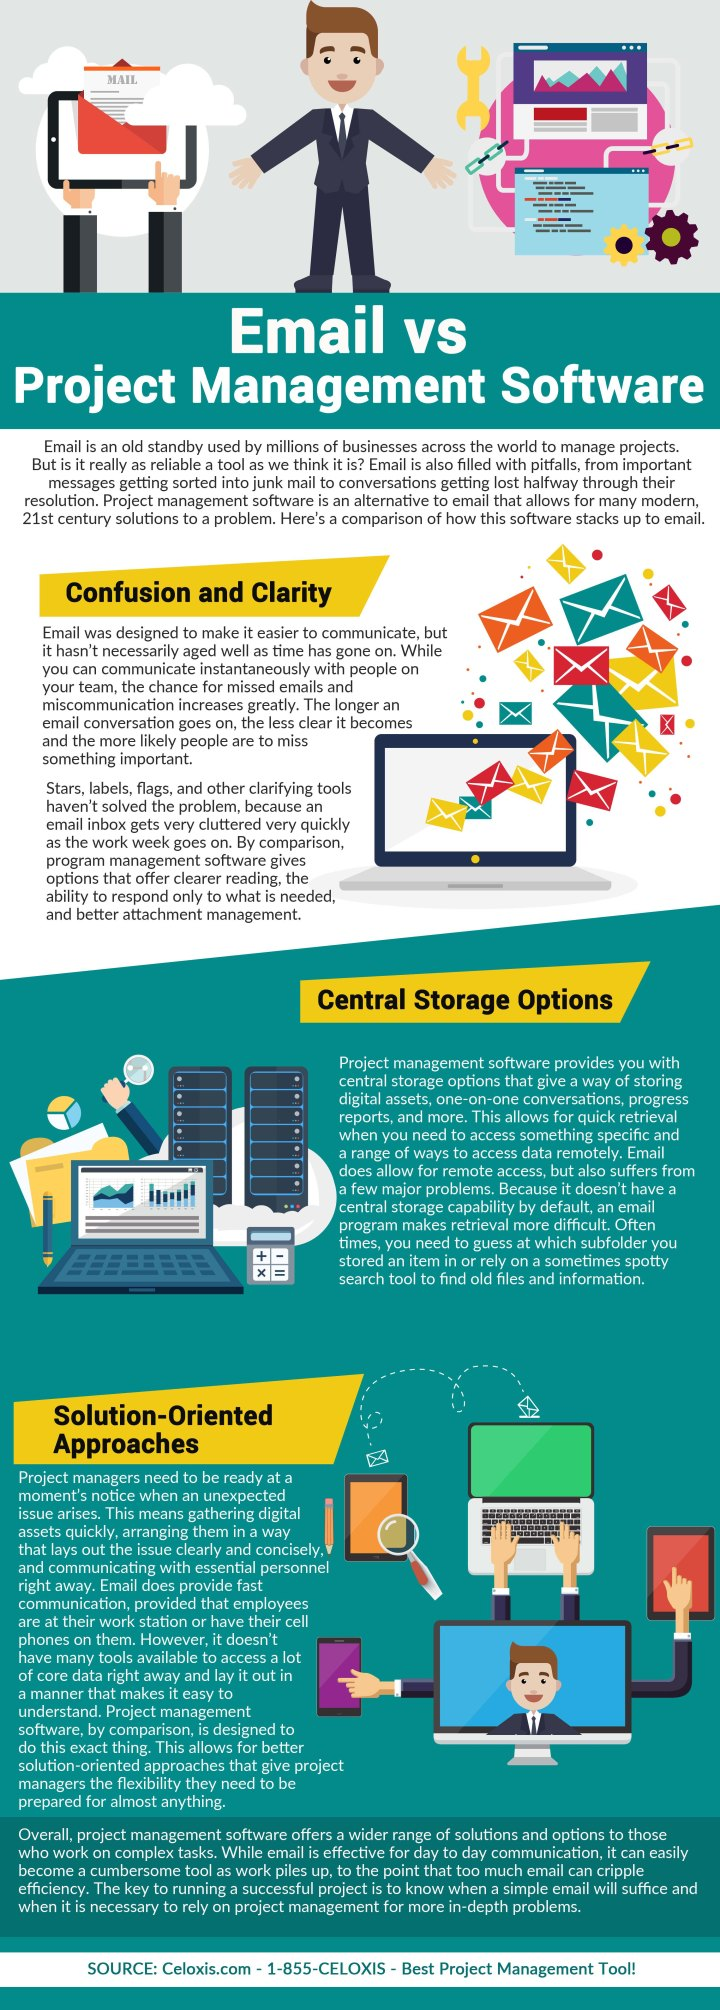 Infographic email vs project management software the celoxis blog project management software xflitez Gallery